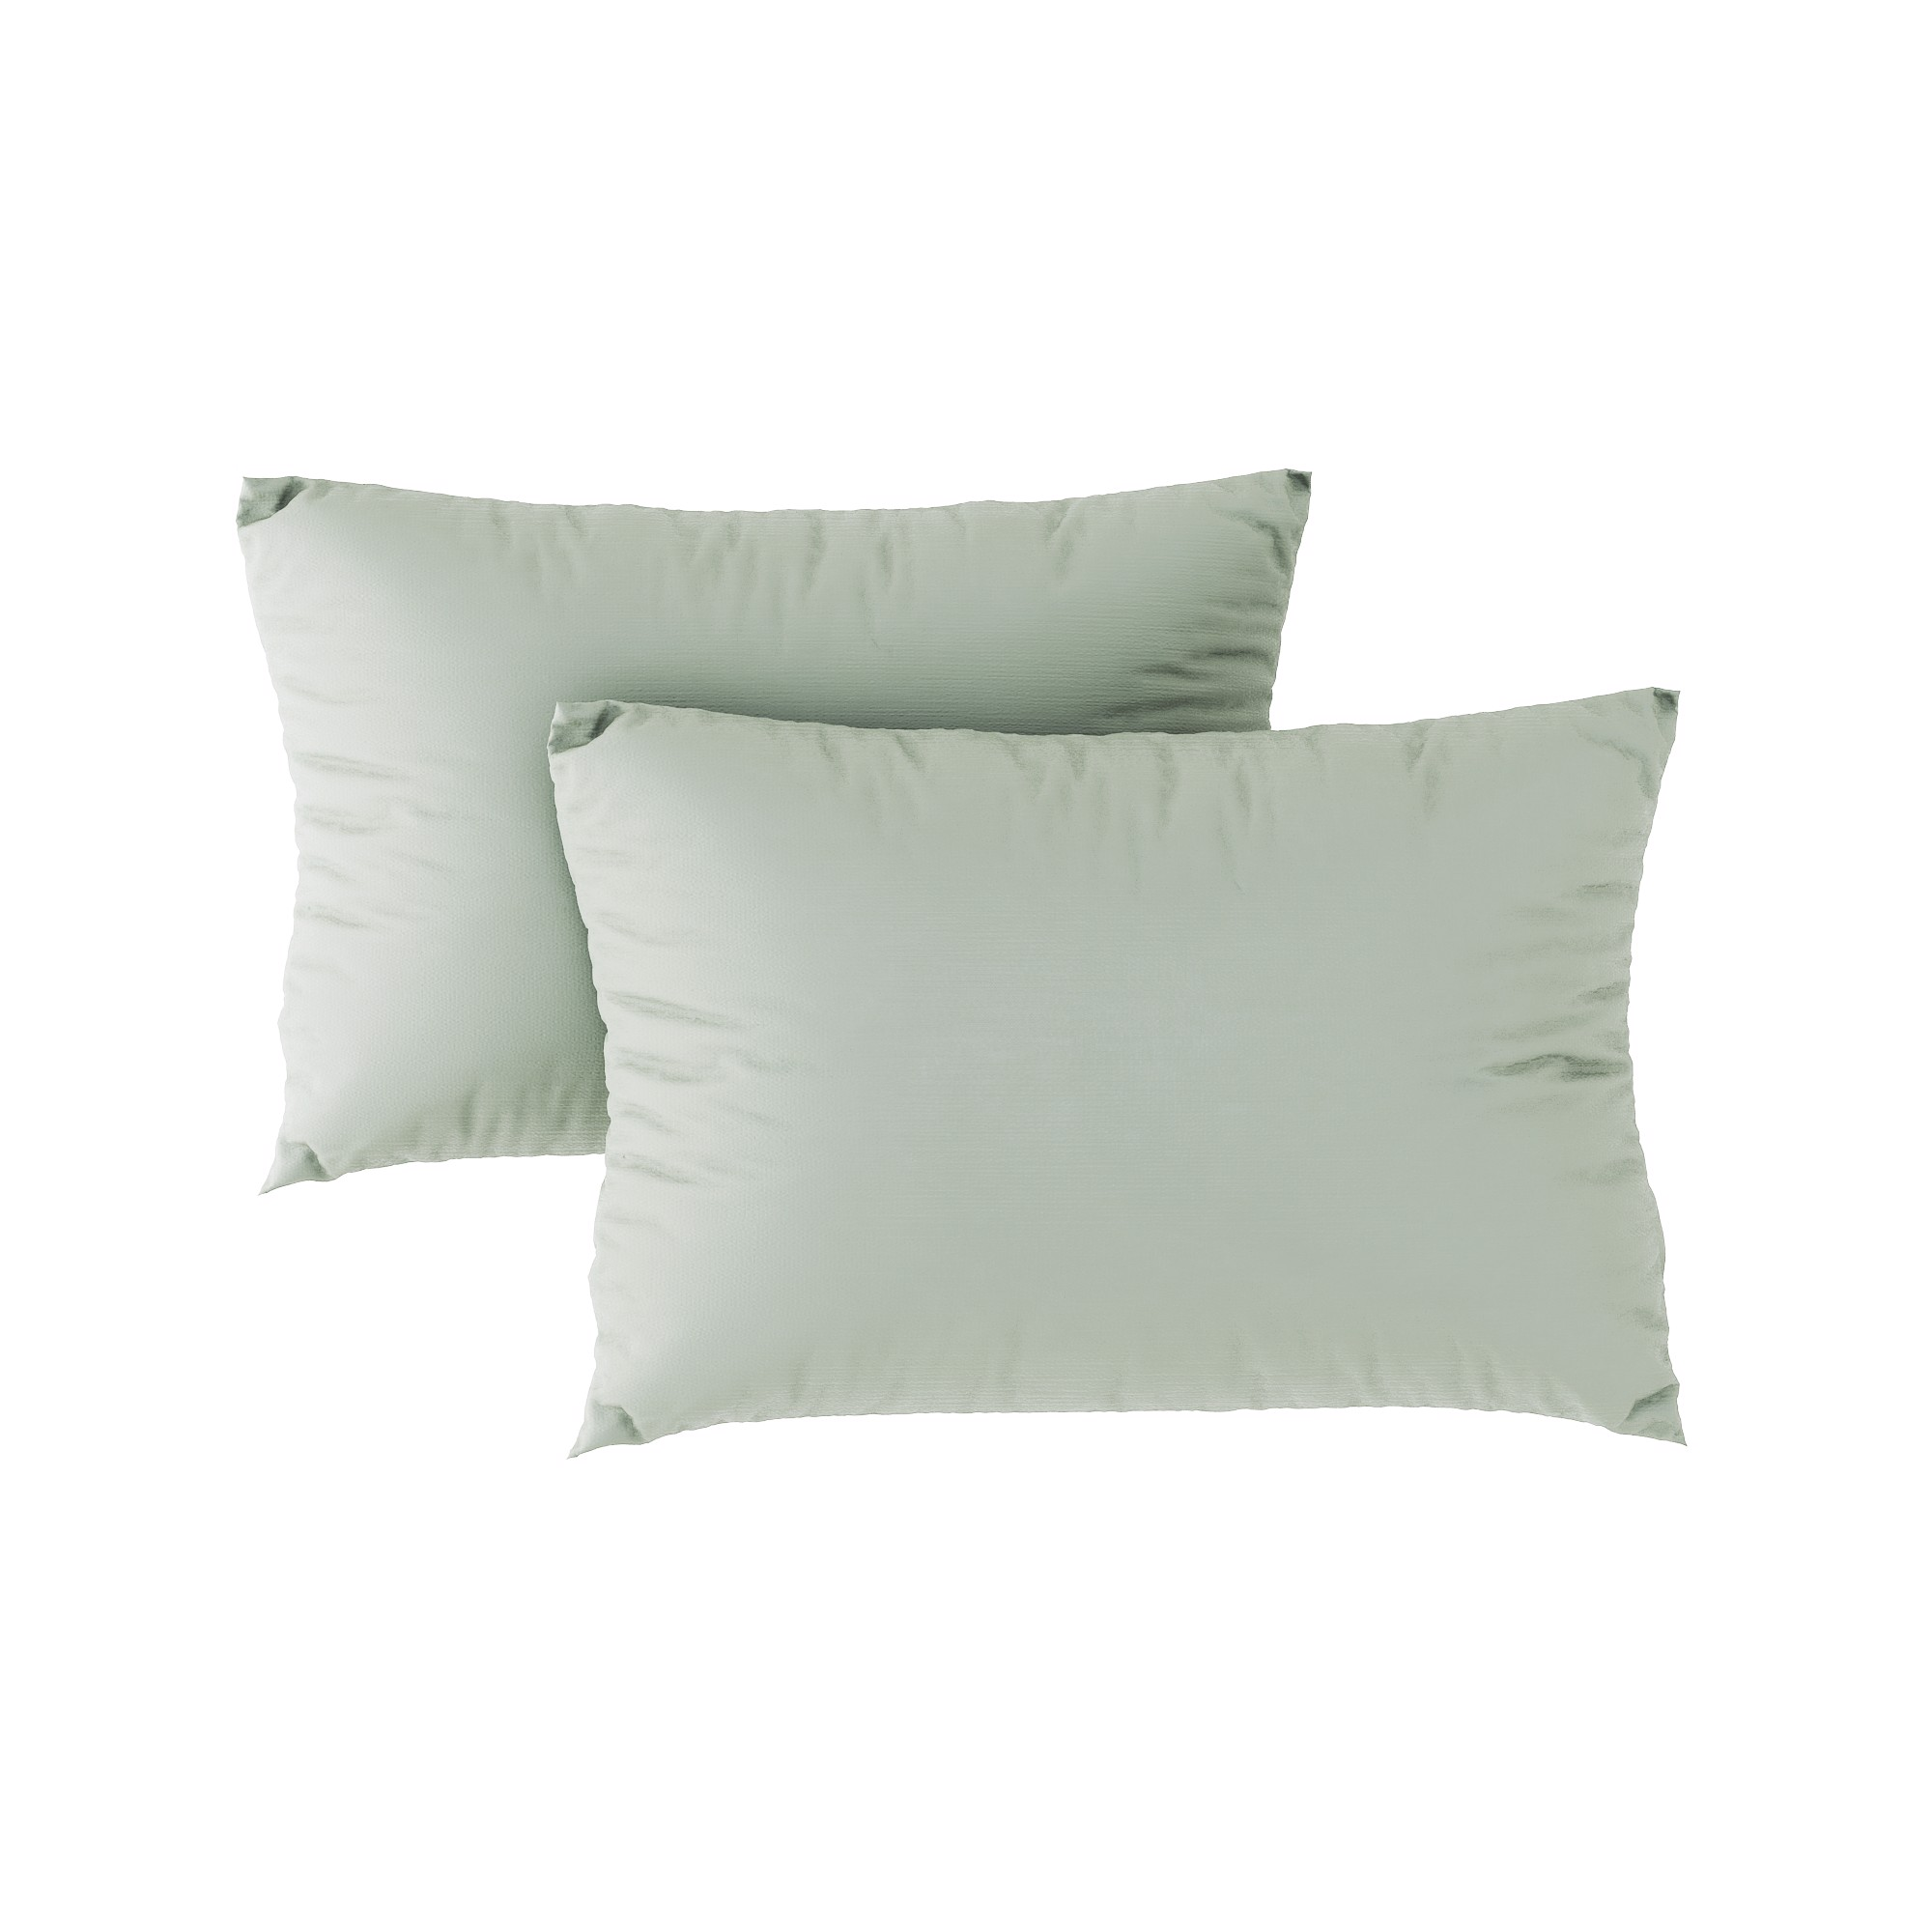 Premium pillow case 02 Pistachio green (2pcs)